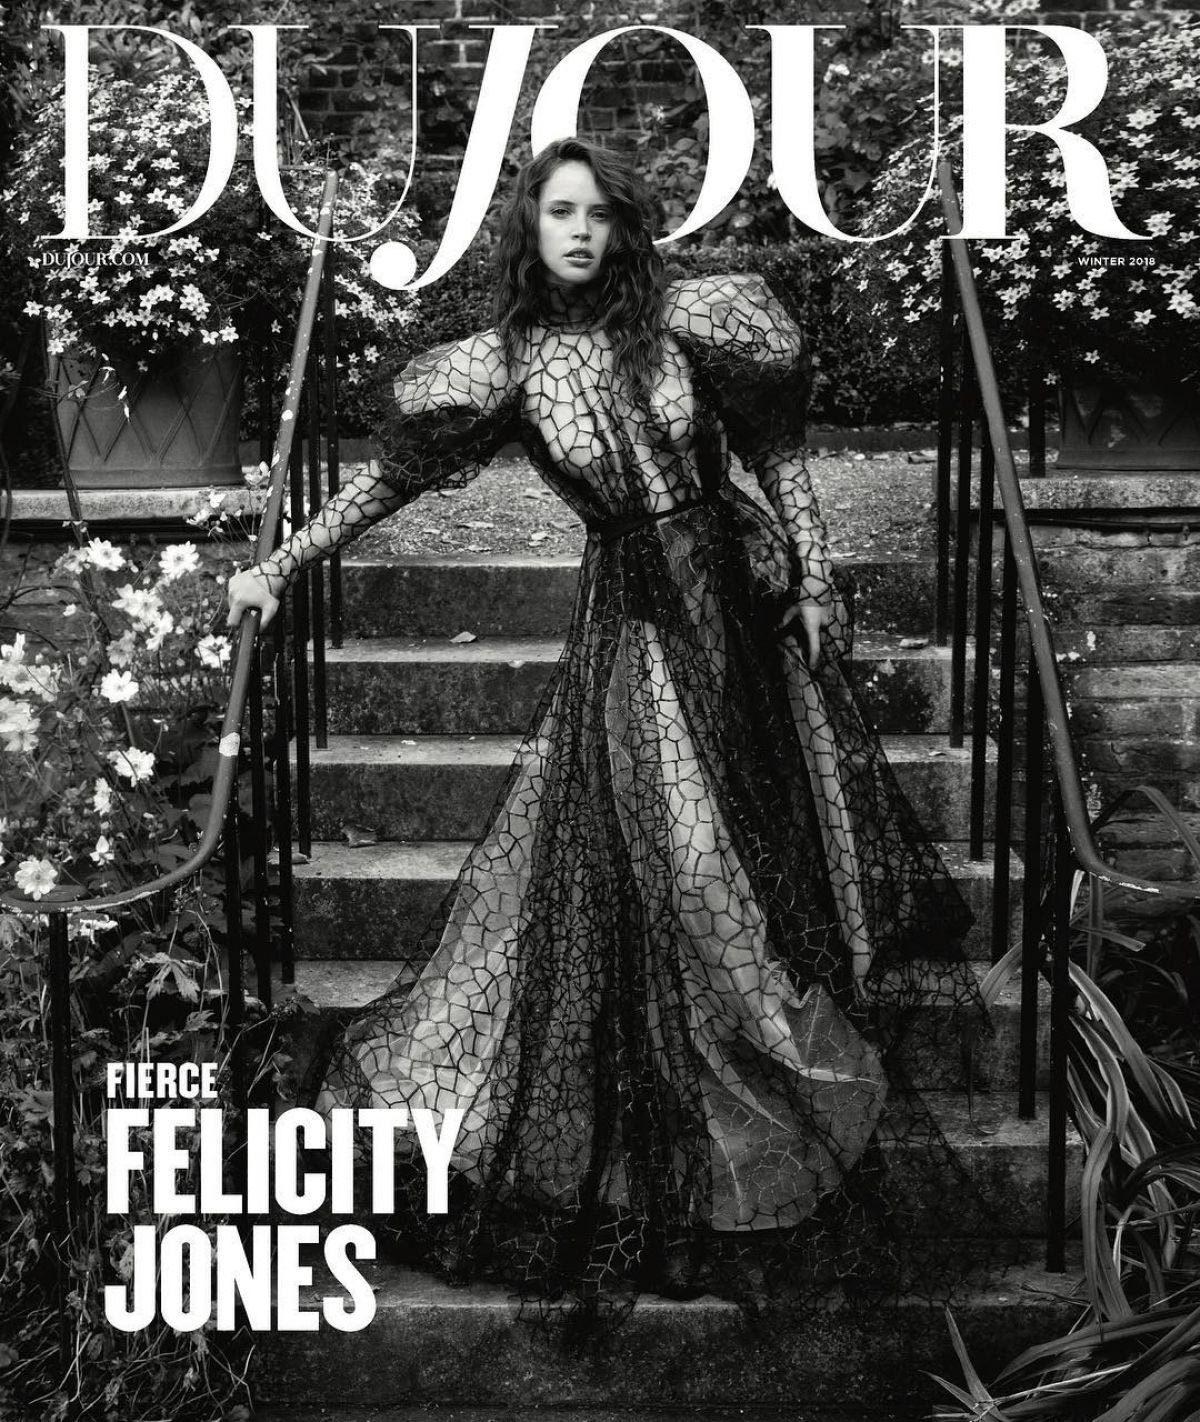 Felicity Jones in Dujour Magazine, November 2018 Issue 1